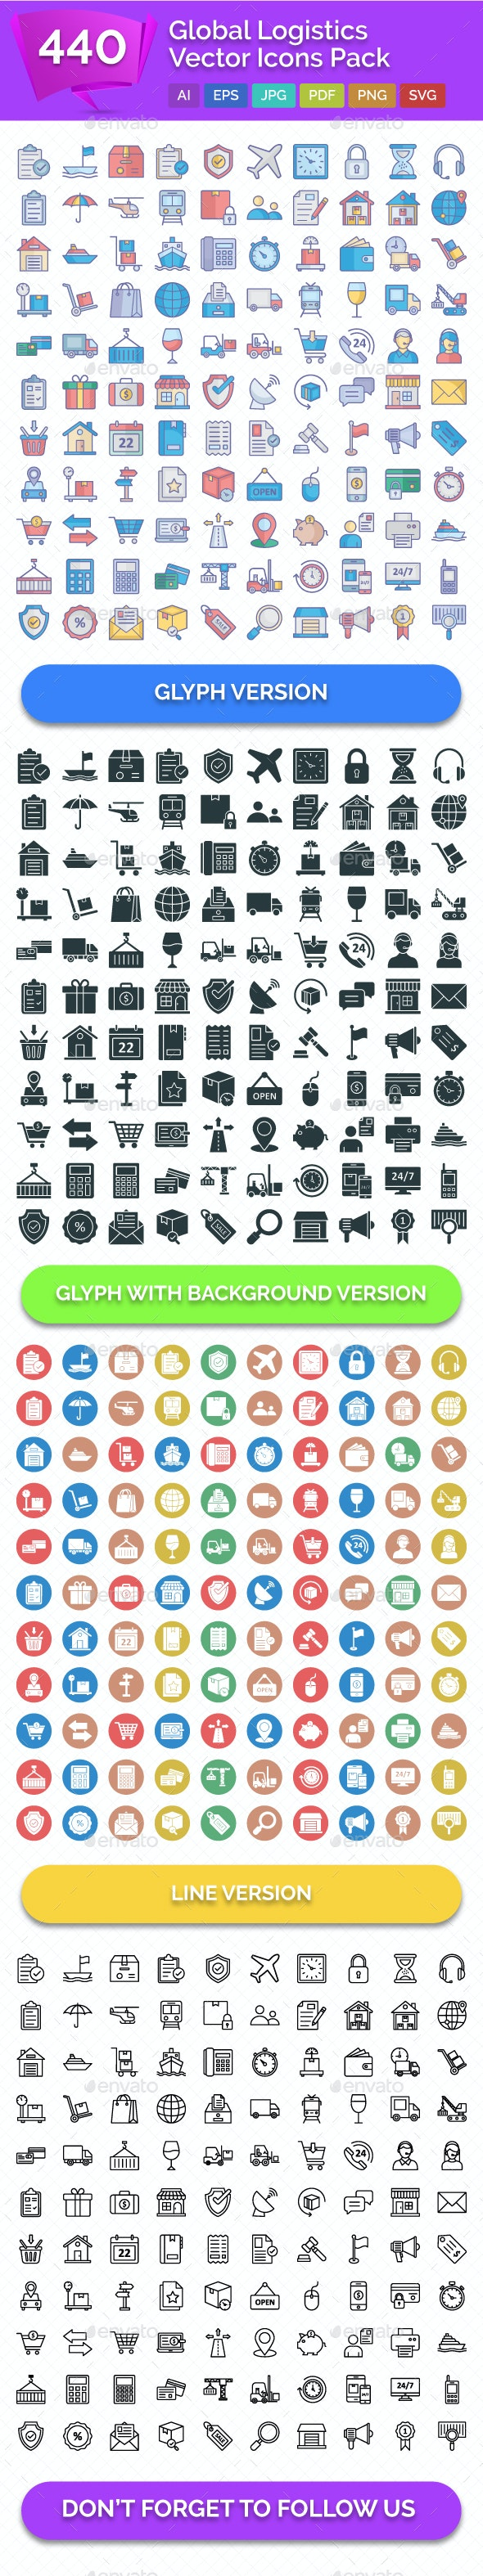 440 Global Logistics Vector Icons Pack - Icons